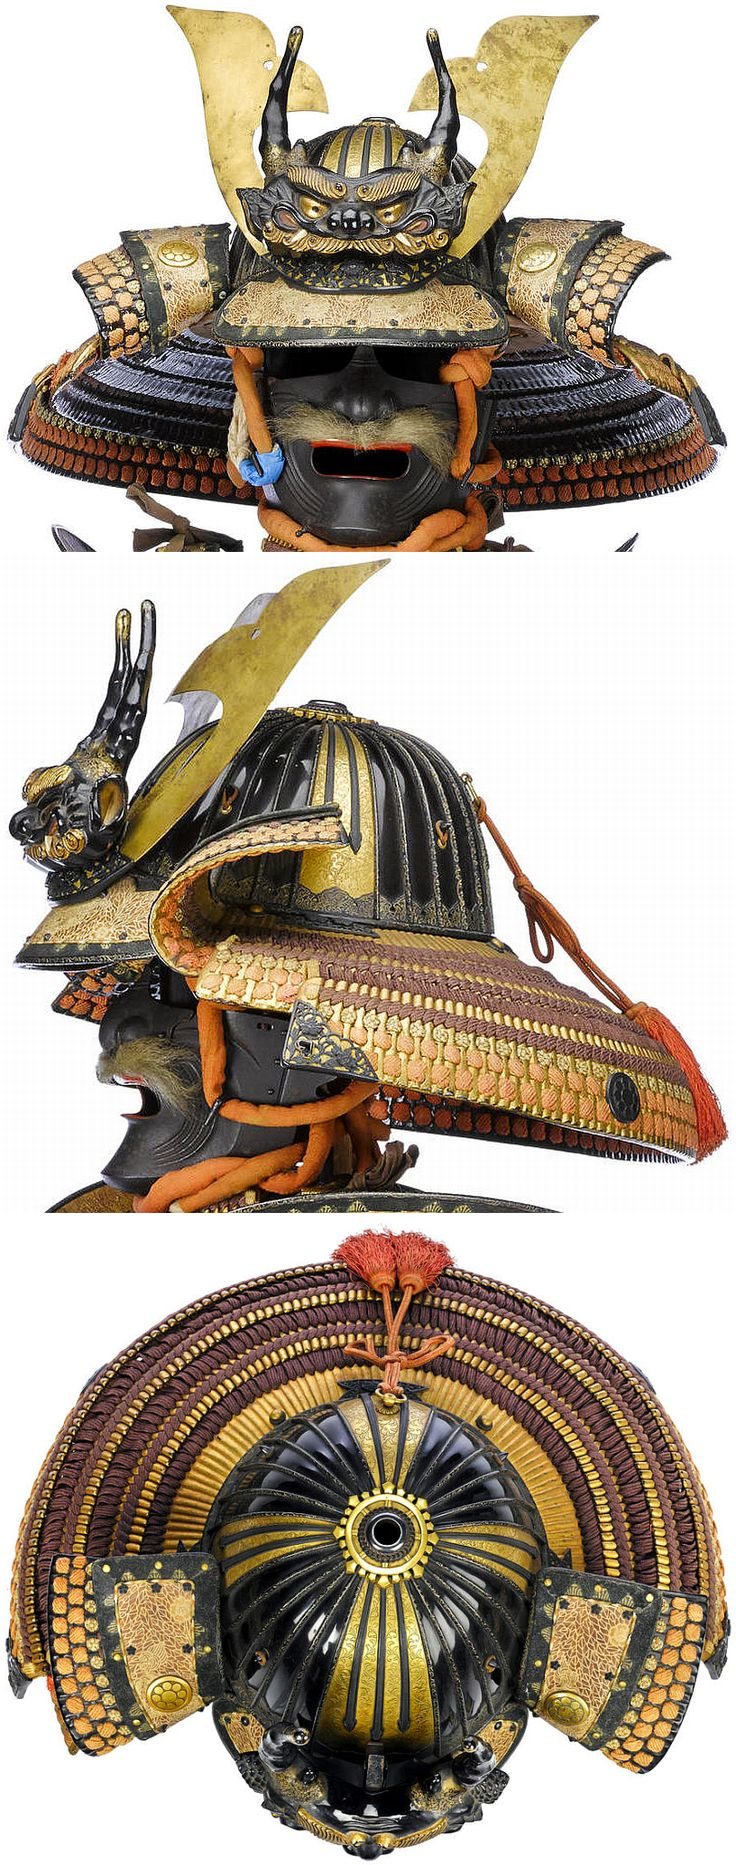 """The Villain's guards are ethereal  Samurai warriors.  Their armor is elaborate and they are masterful with their swords.  24 ken suji bachi kabuto signed """"Masanobu"""", 18th c, lacquered black and finished in katajiro style with four gilt metal plates radiating out from the three-stage shakudo,"""